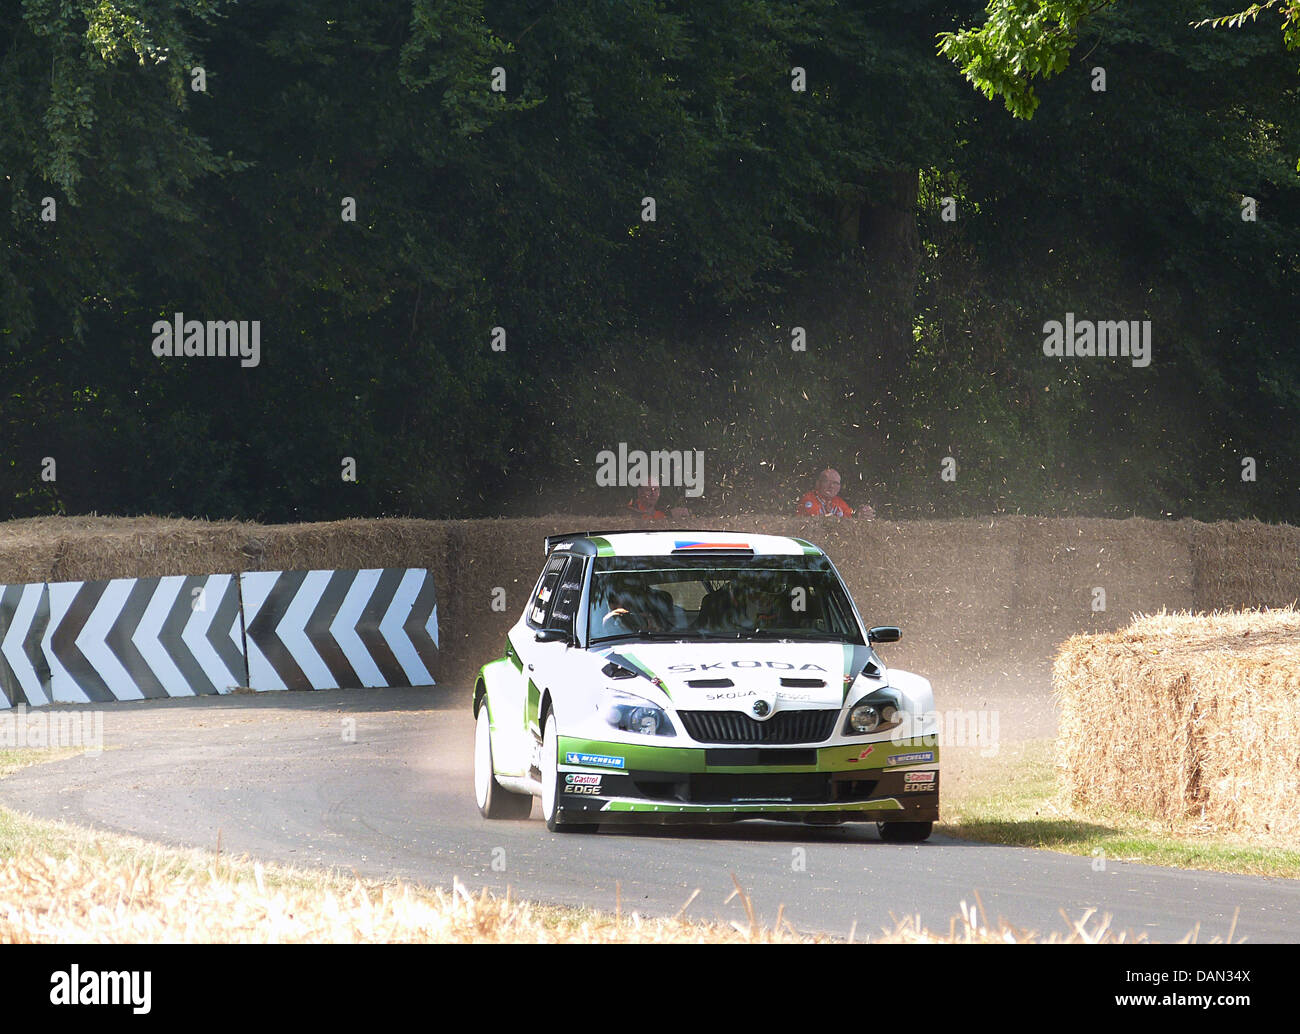 Skoda rally car. Goodwood festival of speed 2013 - Stock Image